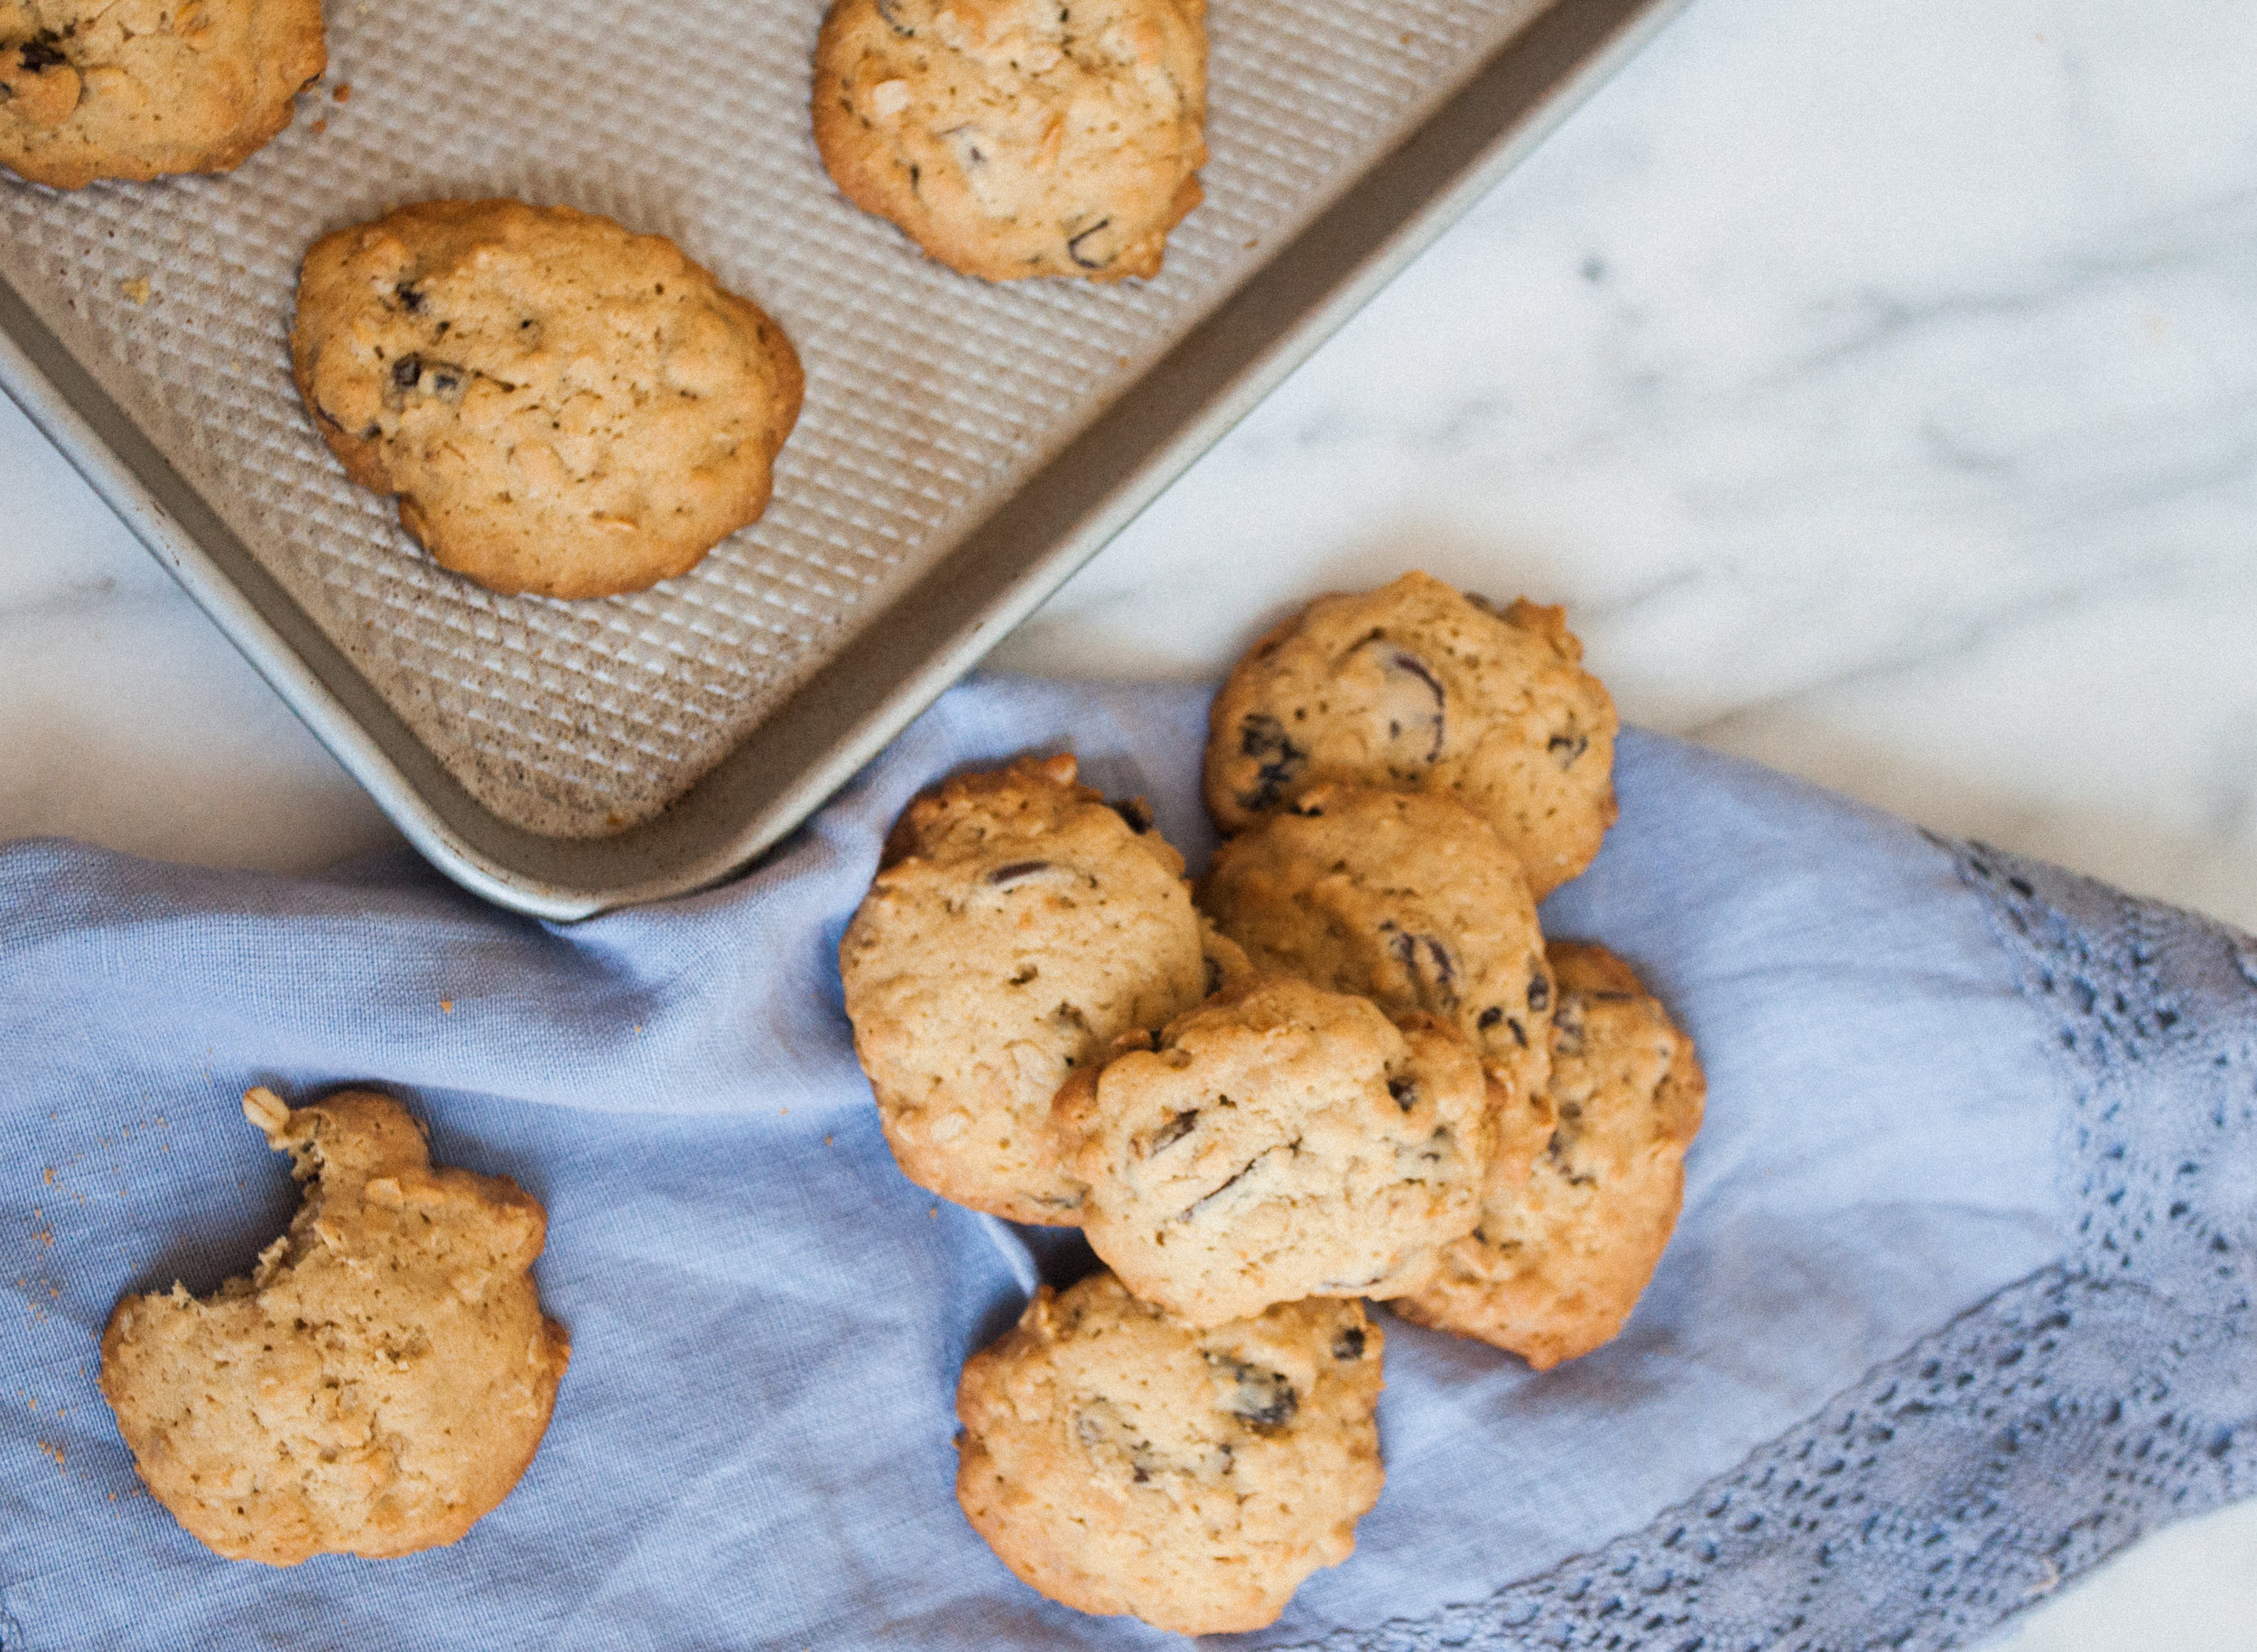 small_victories_cookies_oats_chocolate_chips-2.jpg